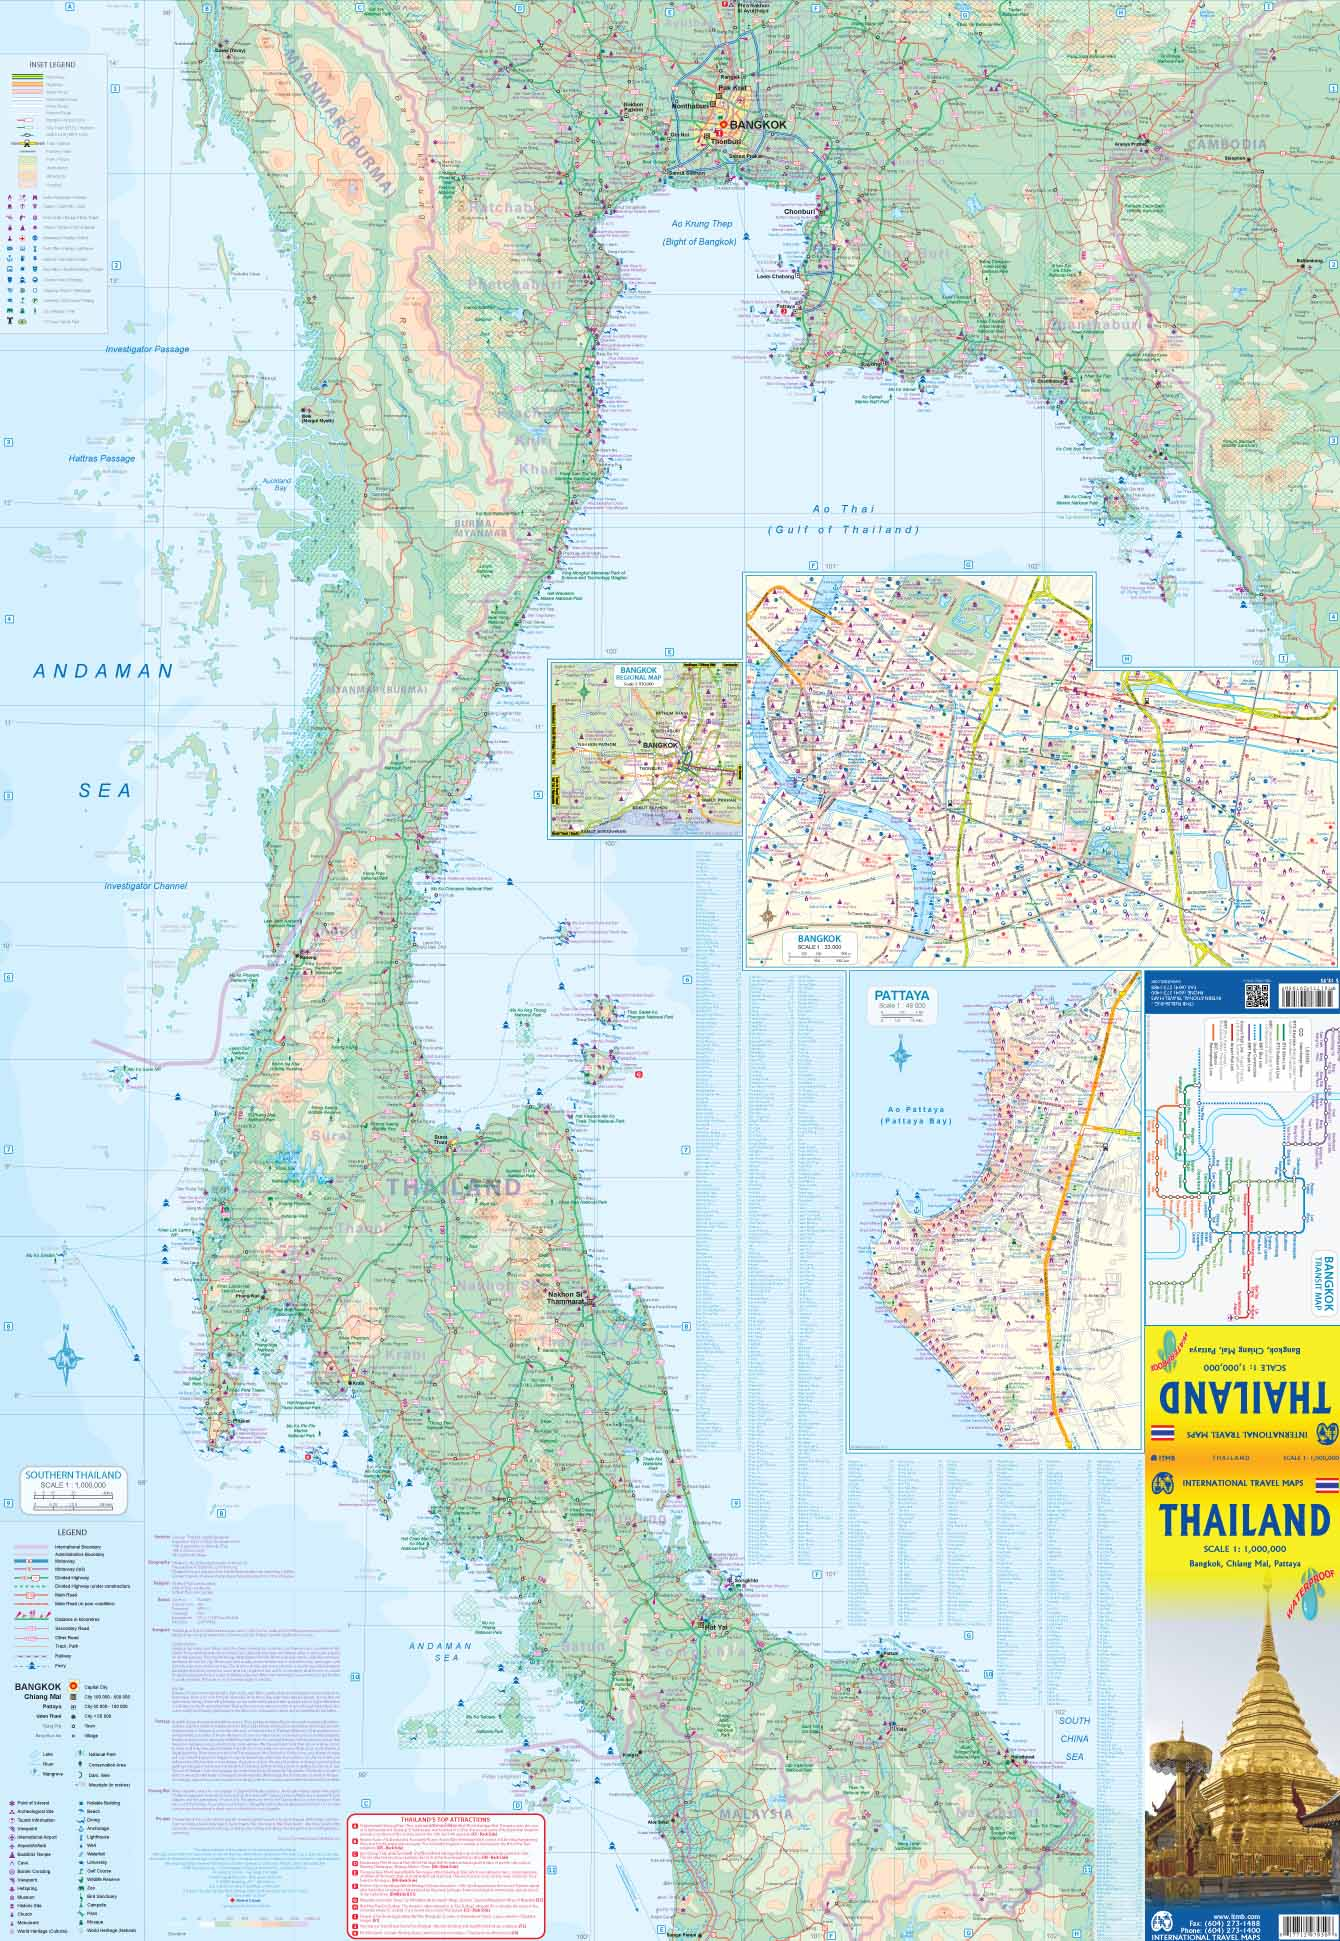 Thailand Topographic Map.Maps For Travel City Maps Road Maps Guides Globes Topographic Maps